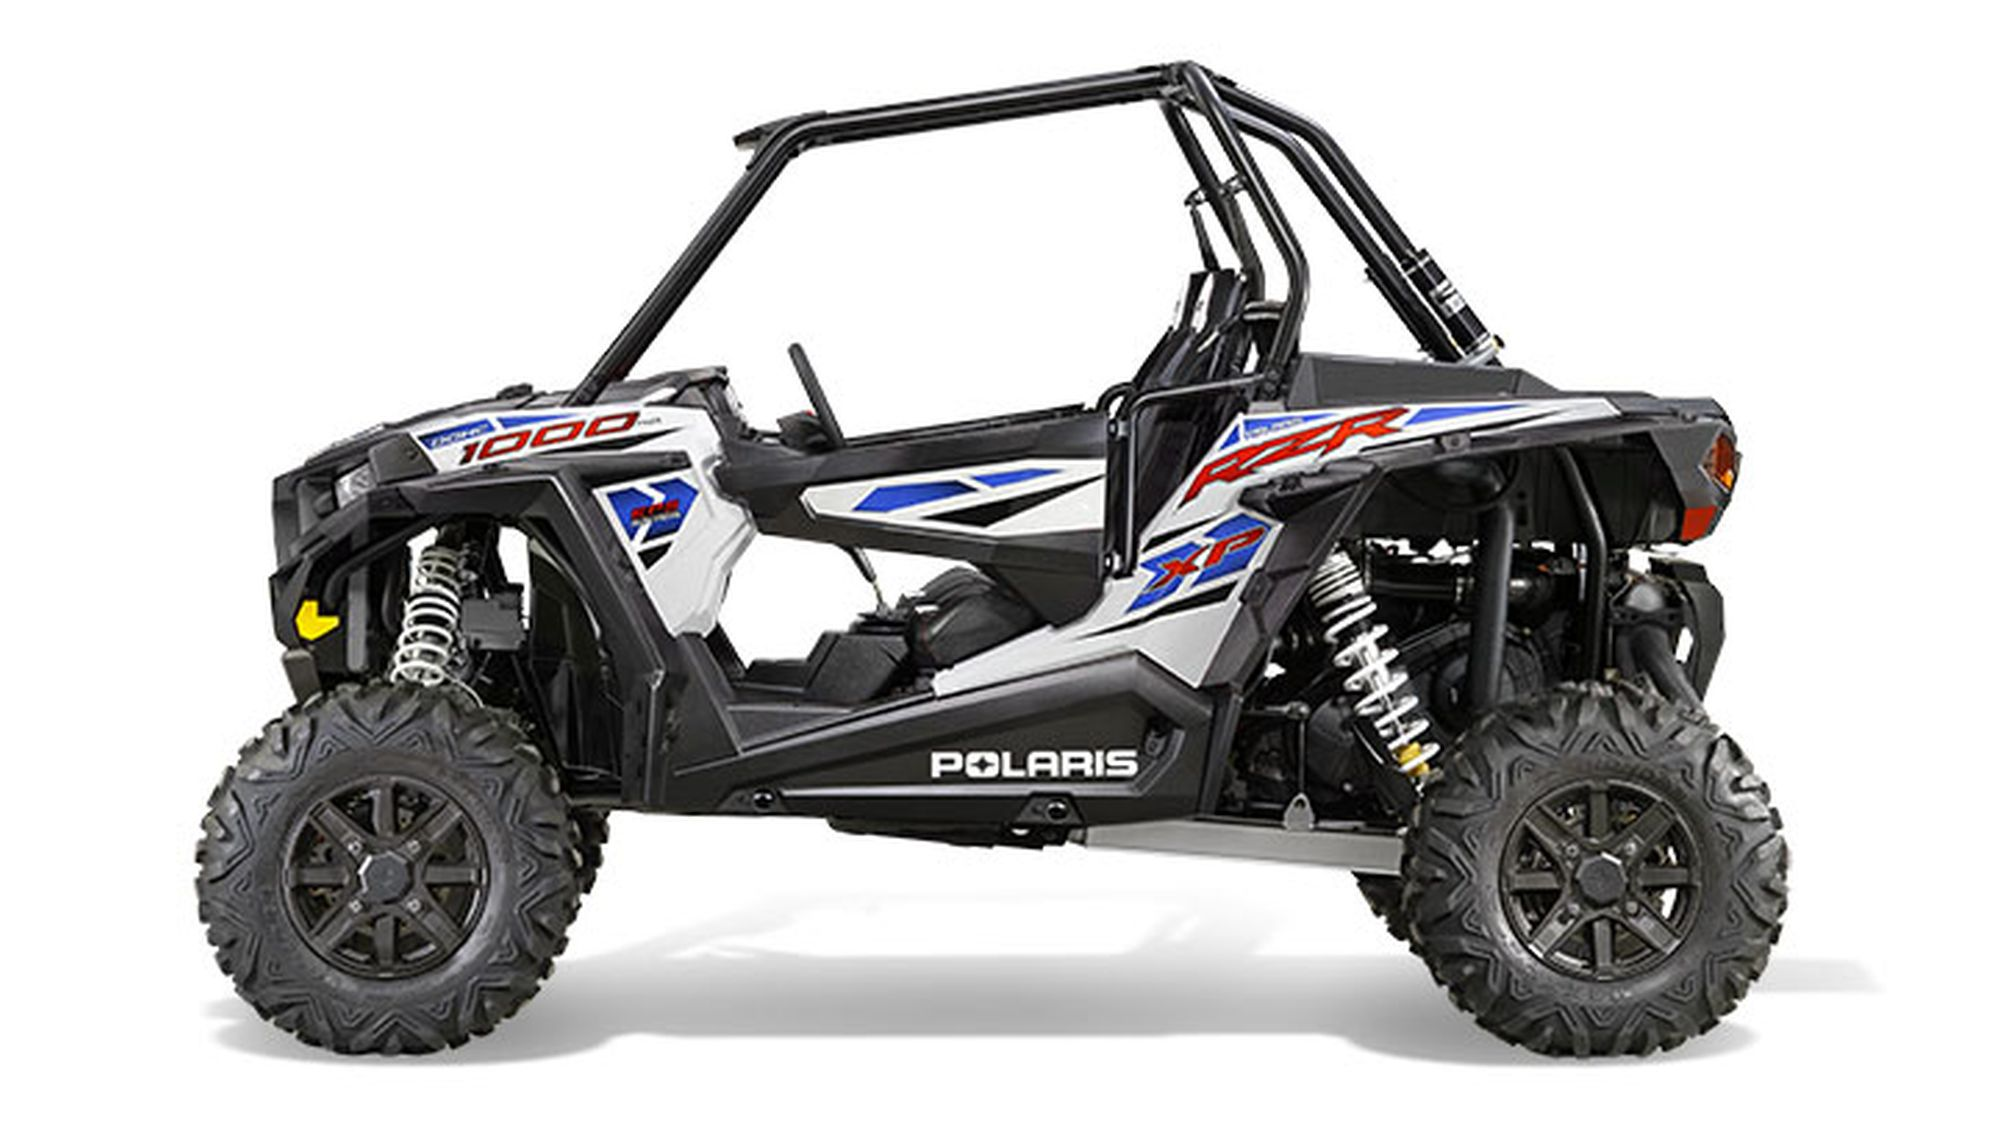 Polaris RZR 1000 XP/1000 Turbo